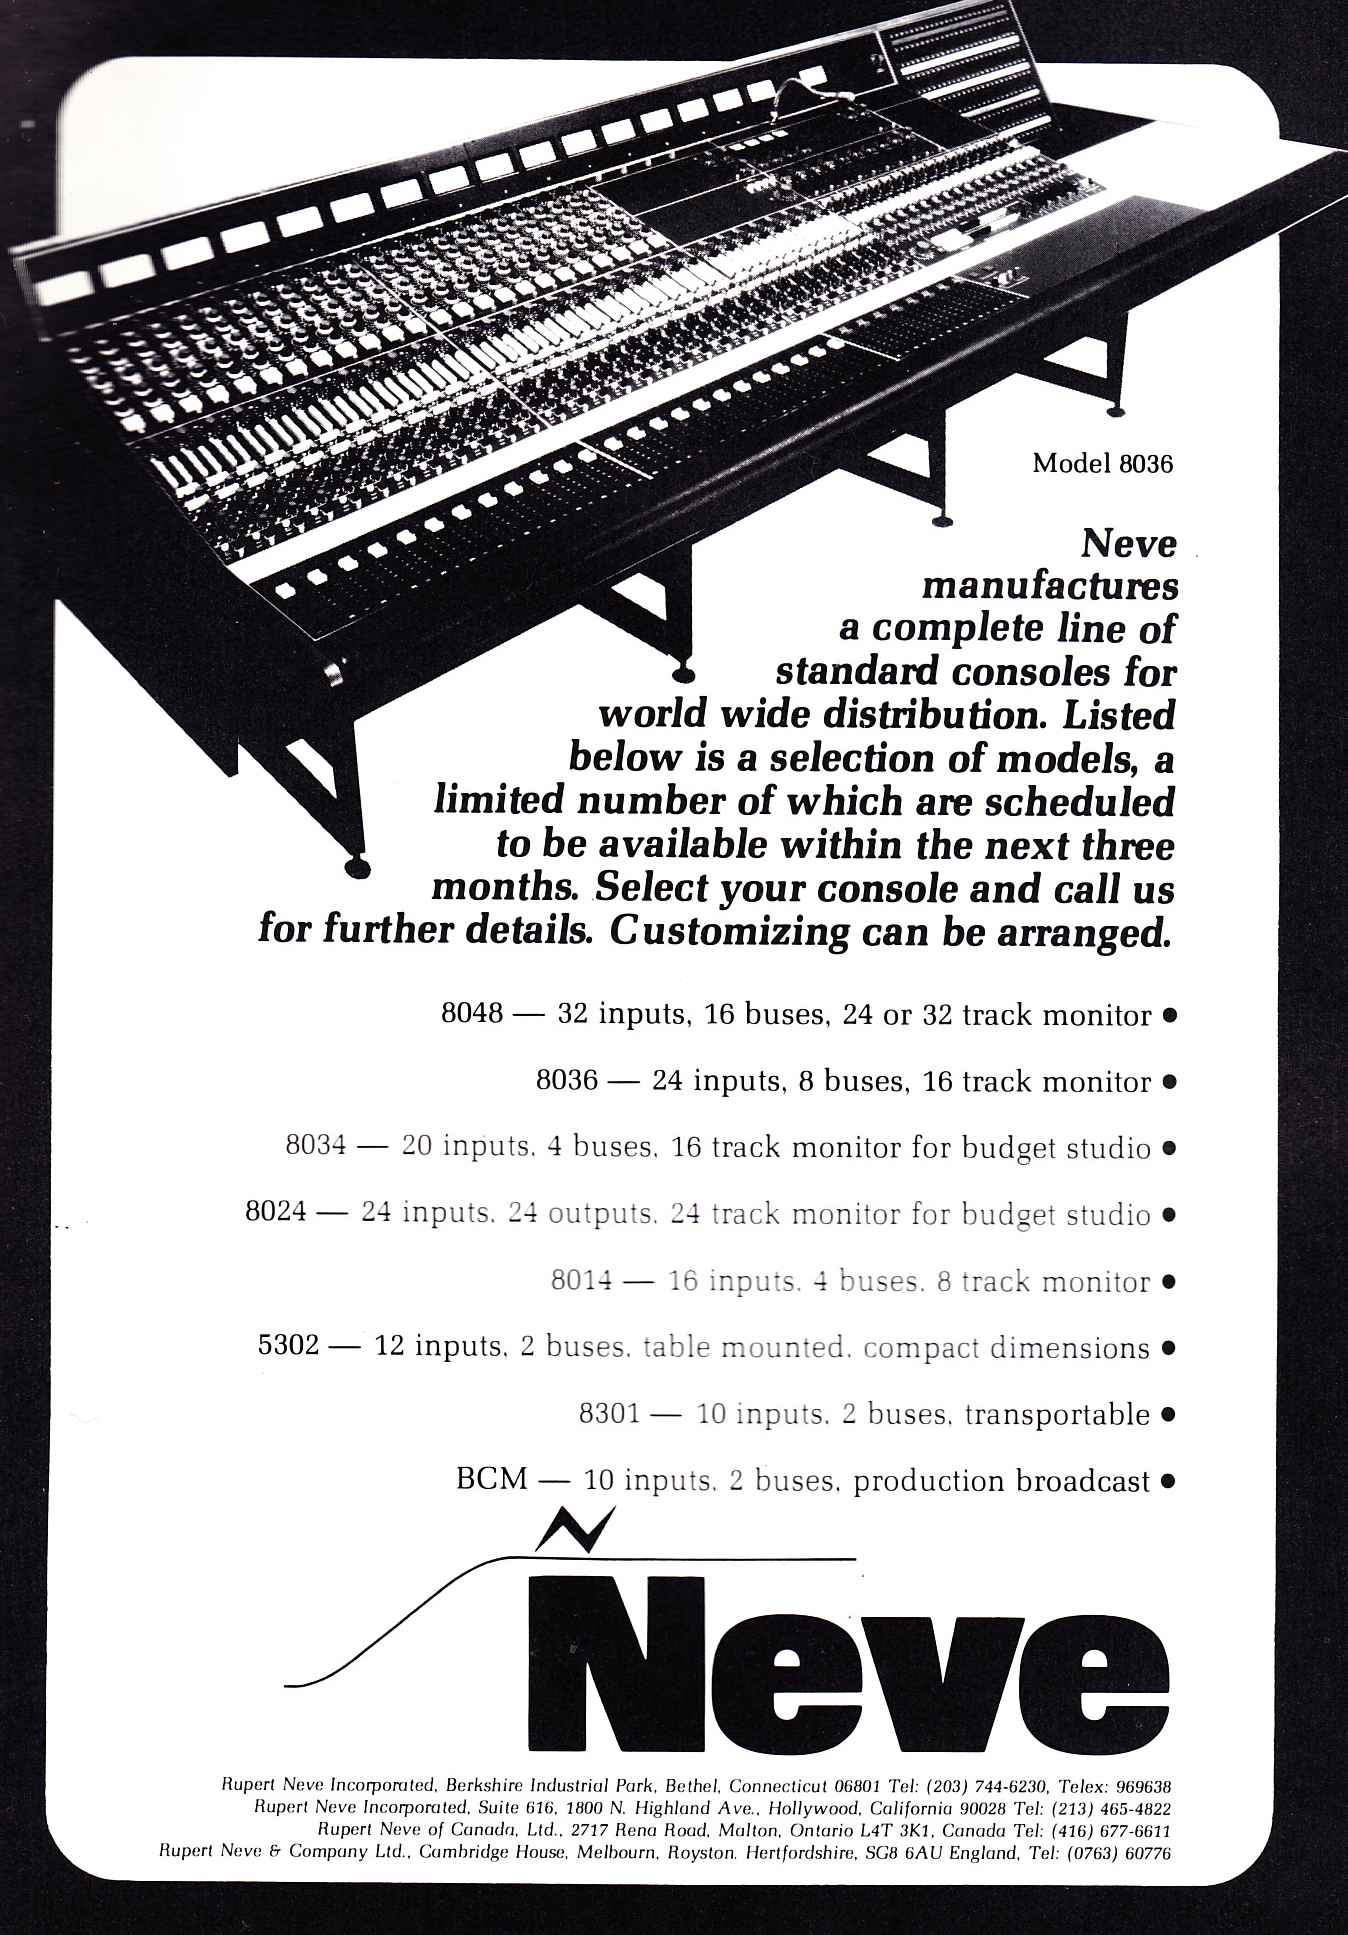 Neve_Console_Lineup_1974